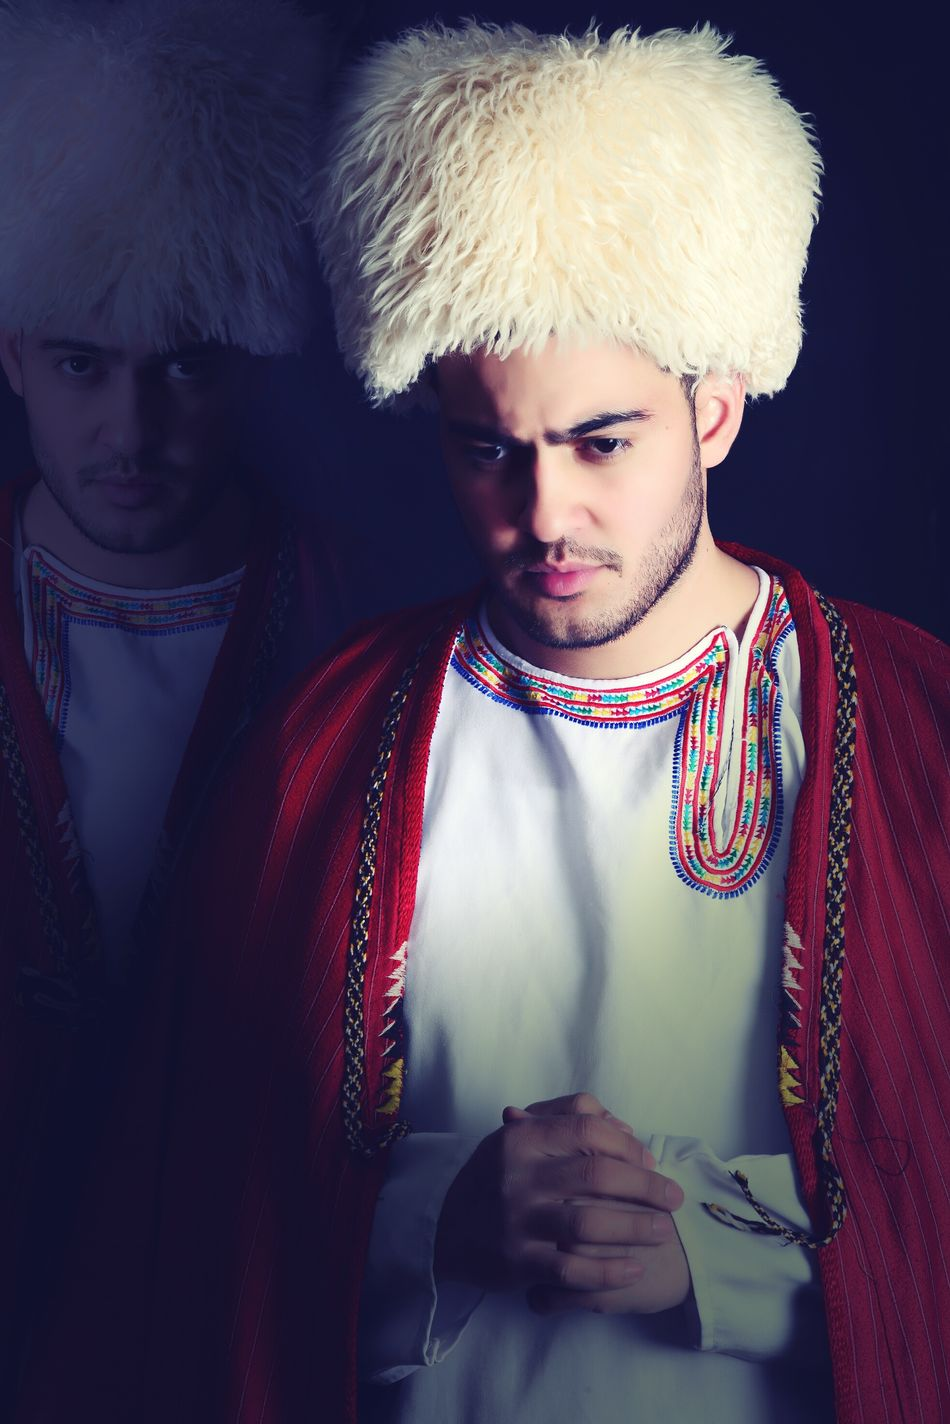 Meeenhan Turkmen Turkmenistan Turkmendress Traditional National Dress People Modelphotography Fashion Model Model Handsome